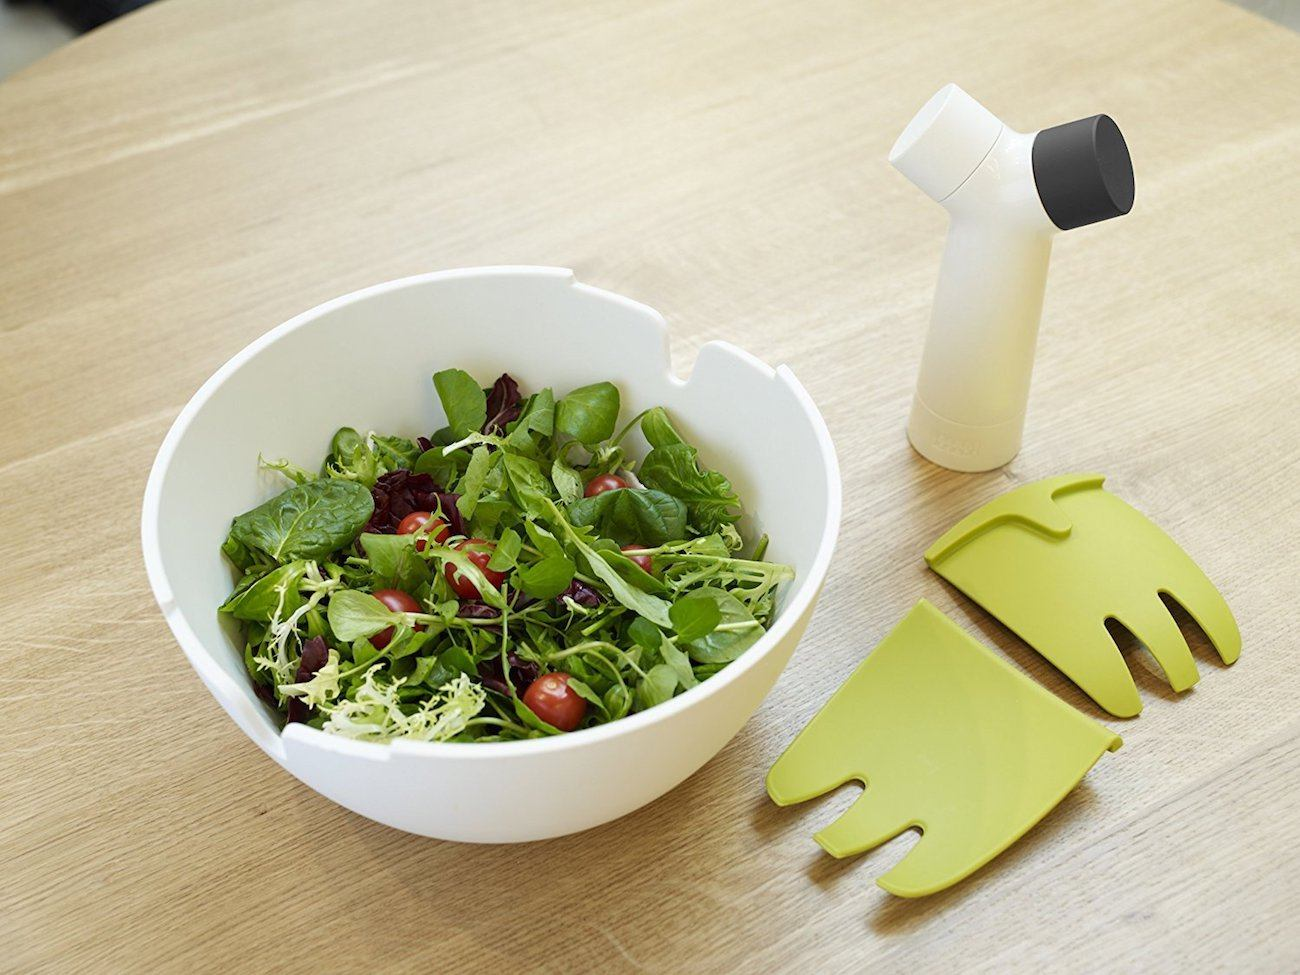 Y-Grinder Salt and Pepper Grinder by Joseph Joseph